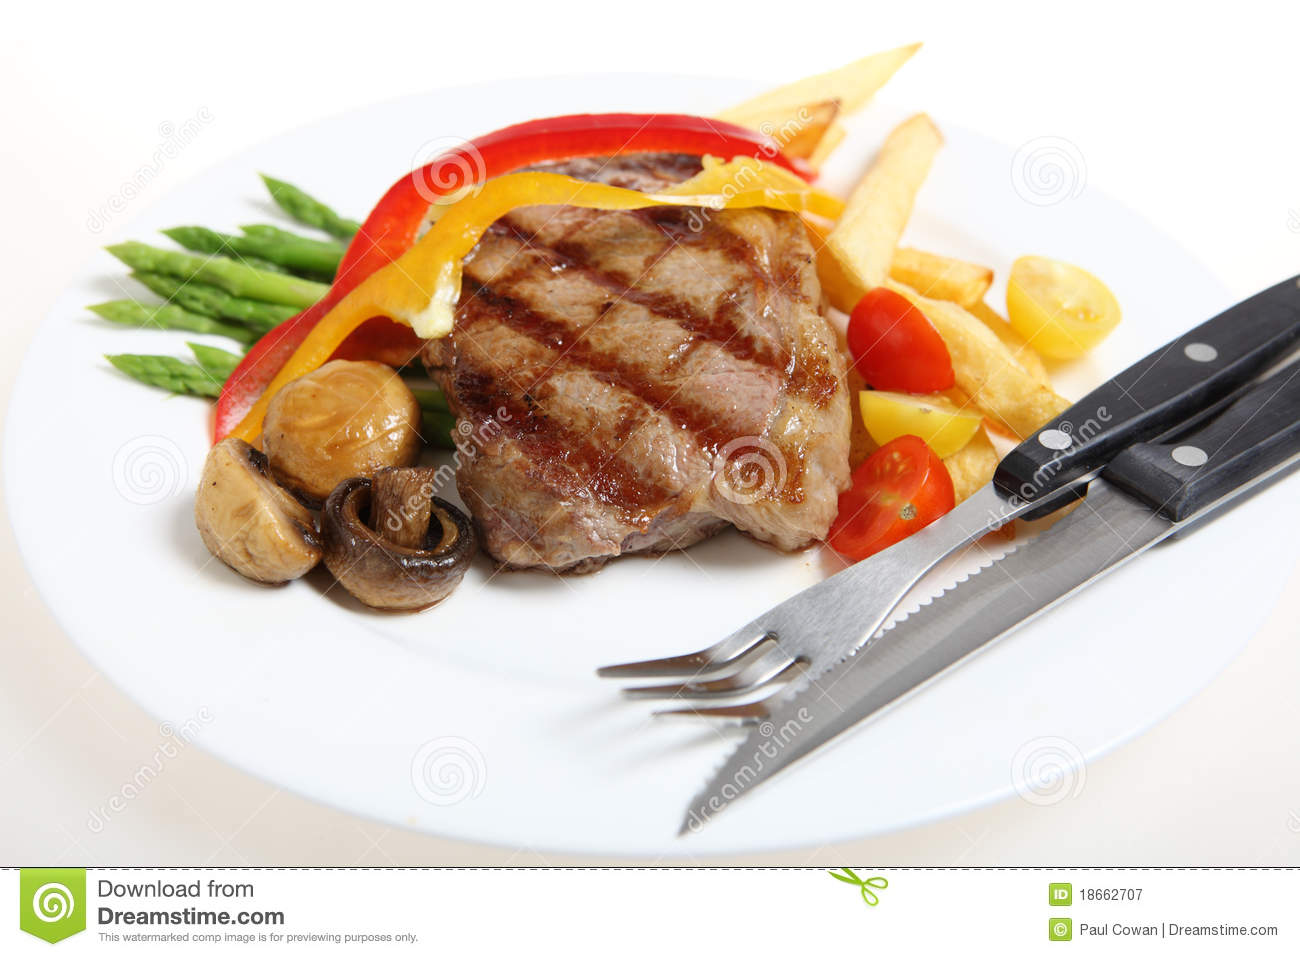 Veal steak meal with cutlery